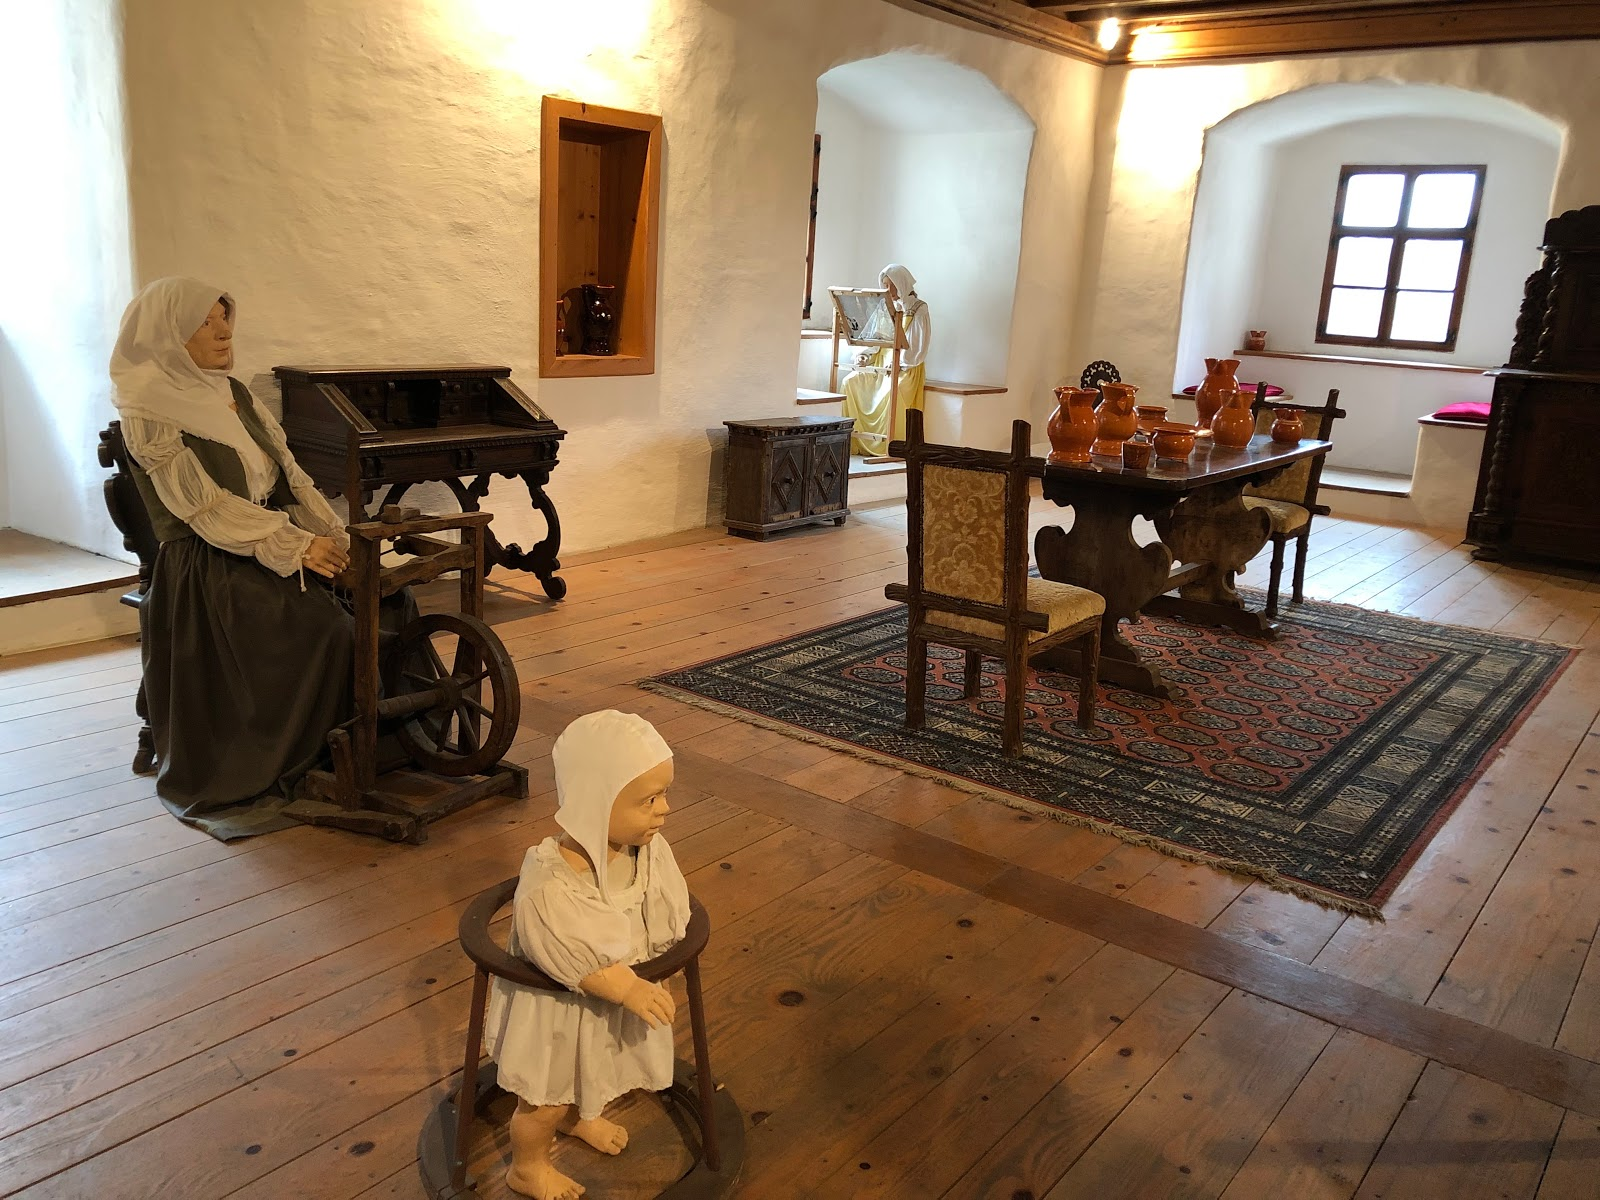 Walker for the kids during the medival period displayed in the Predjama Castle